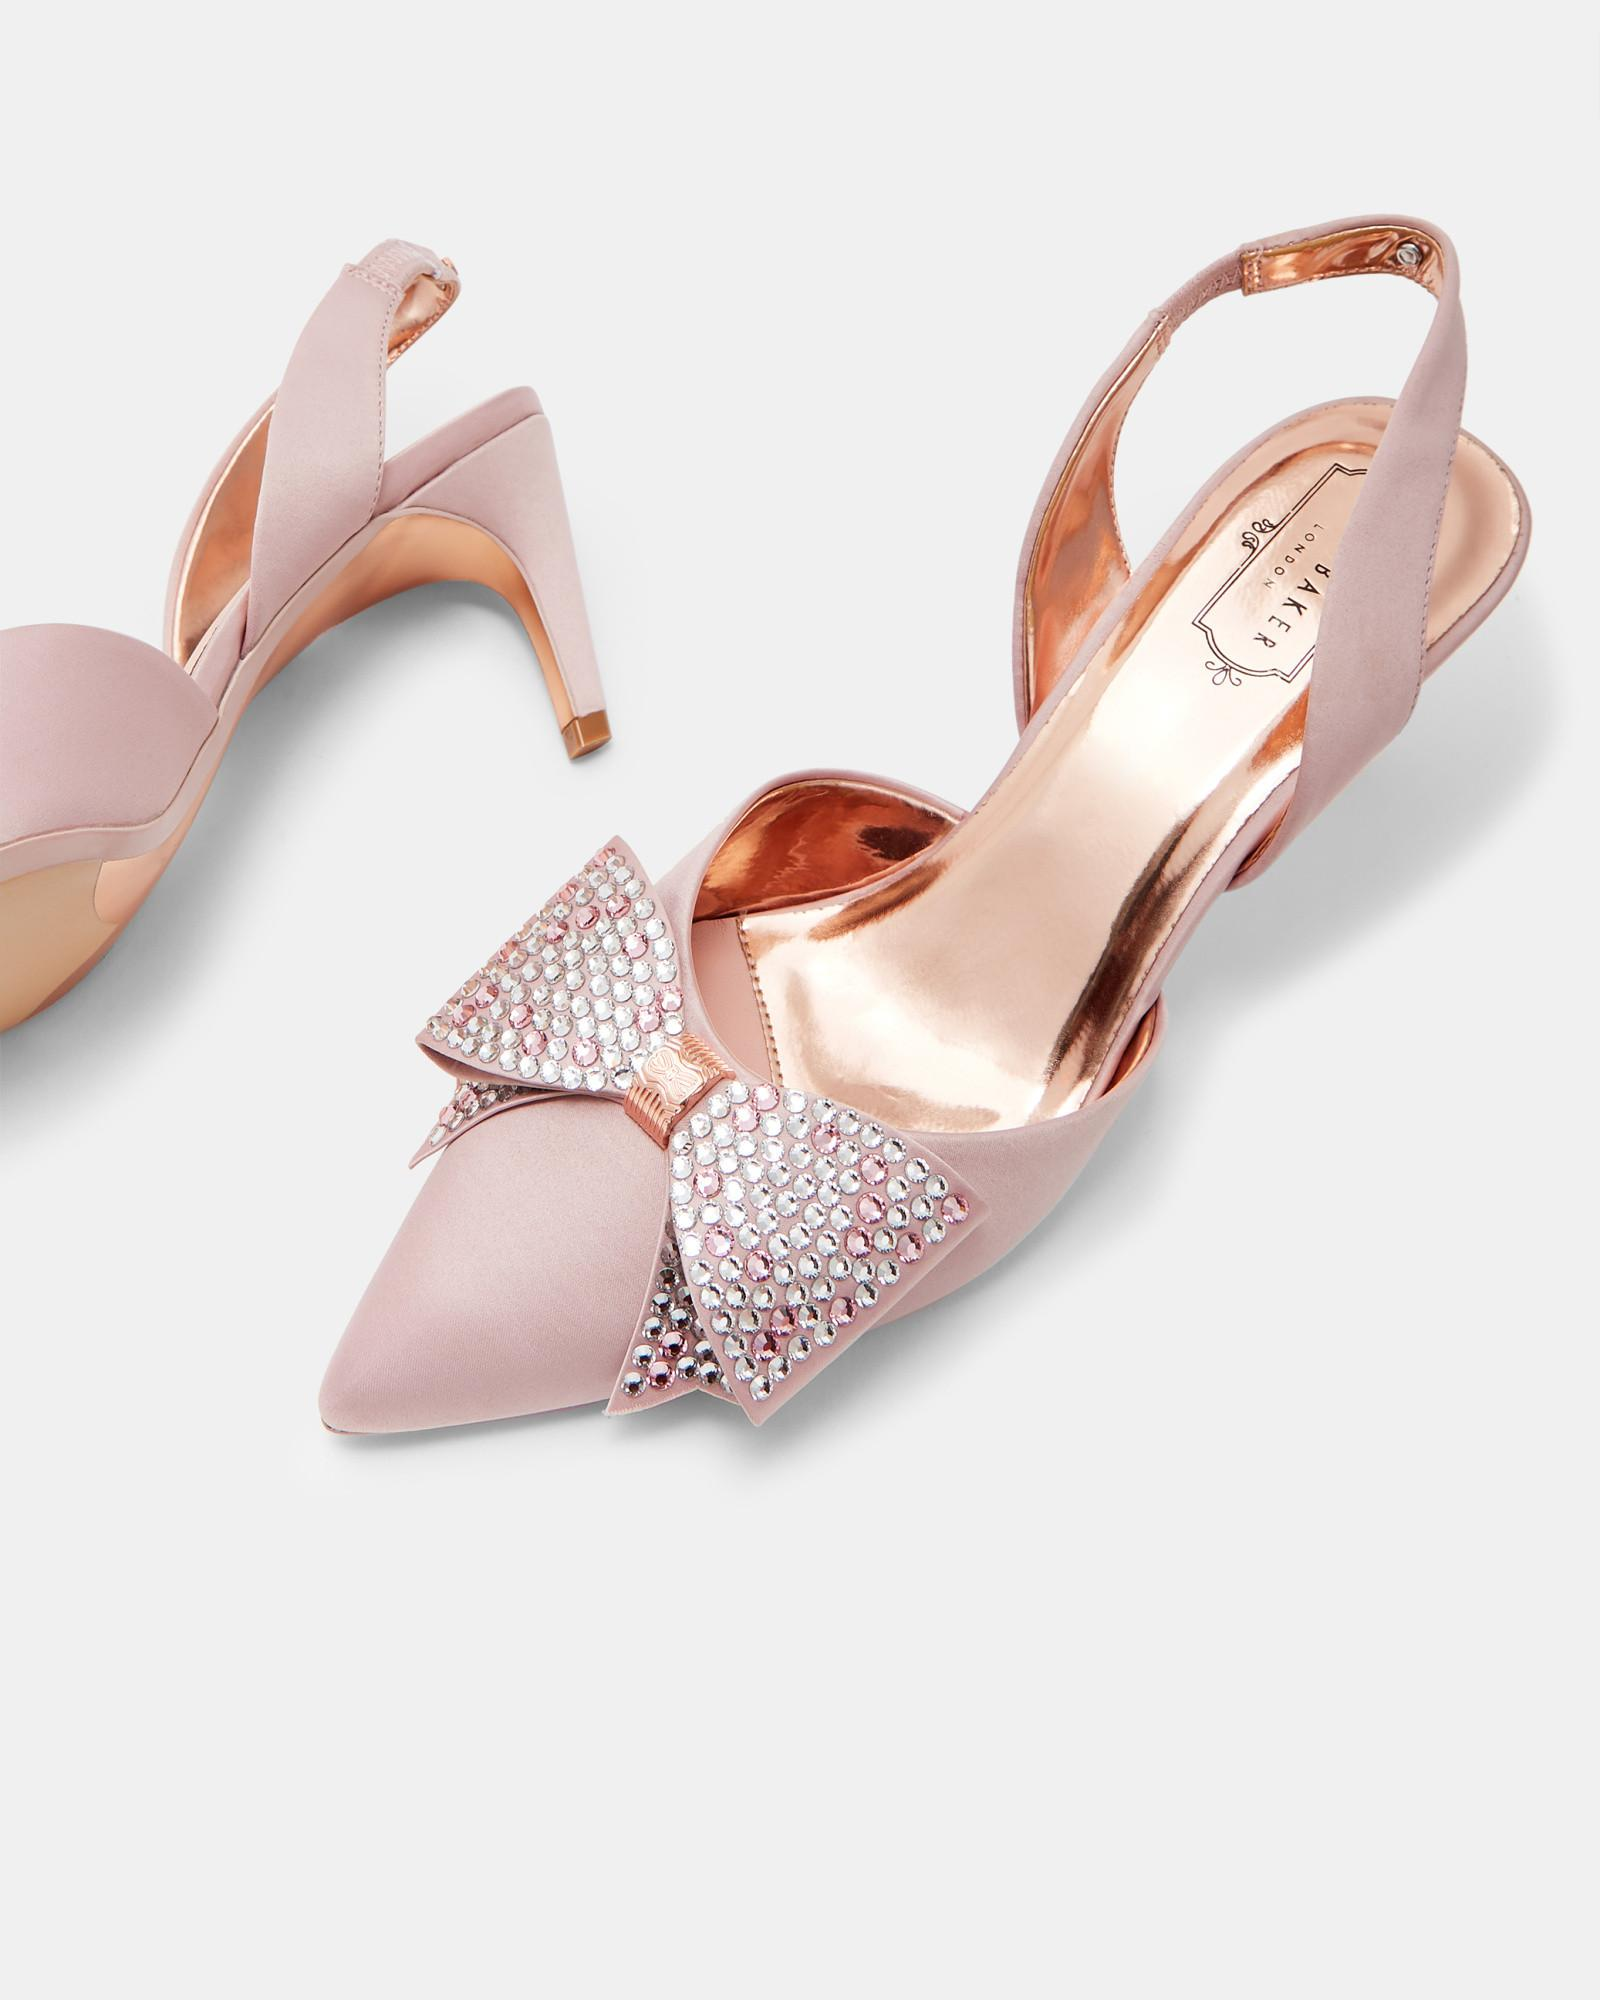 ed5639ec8 Ted Baker Crystal Bow Sling Back Courts in Pink - Lyst